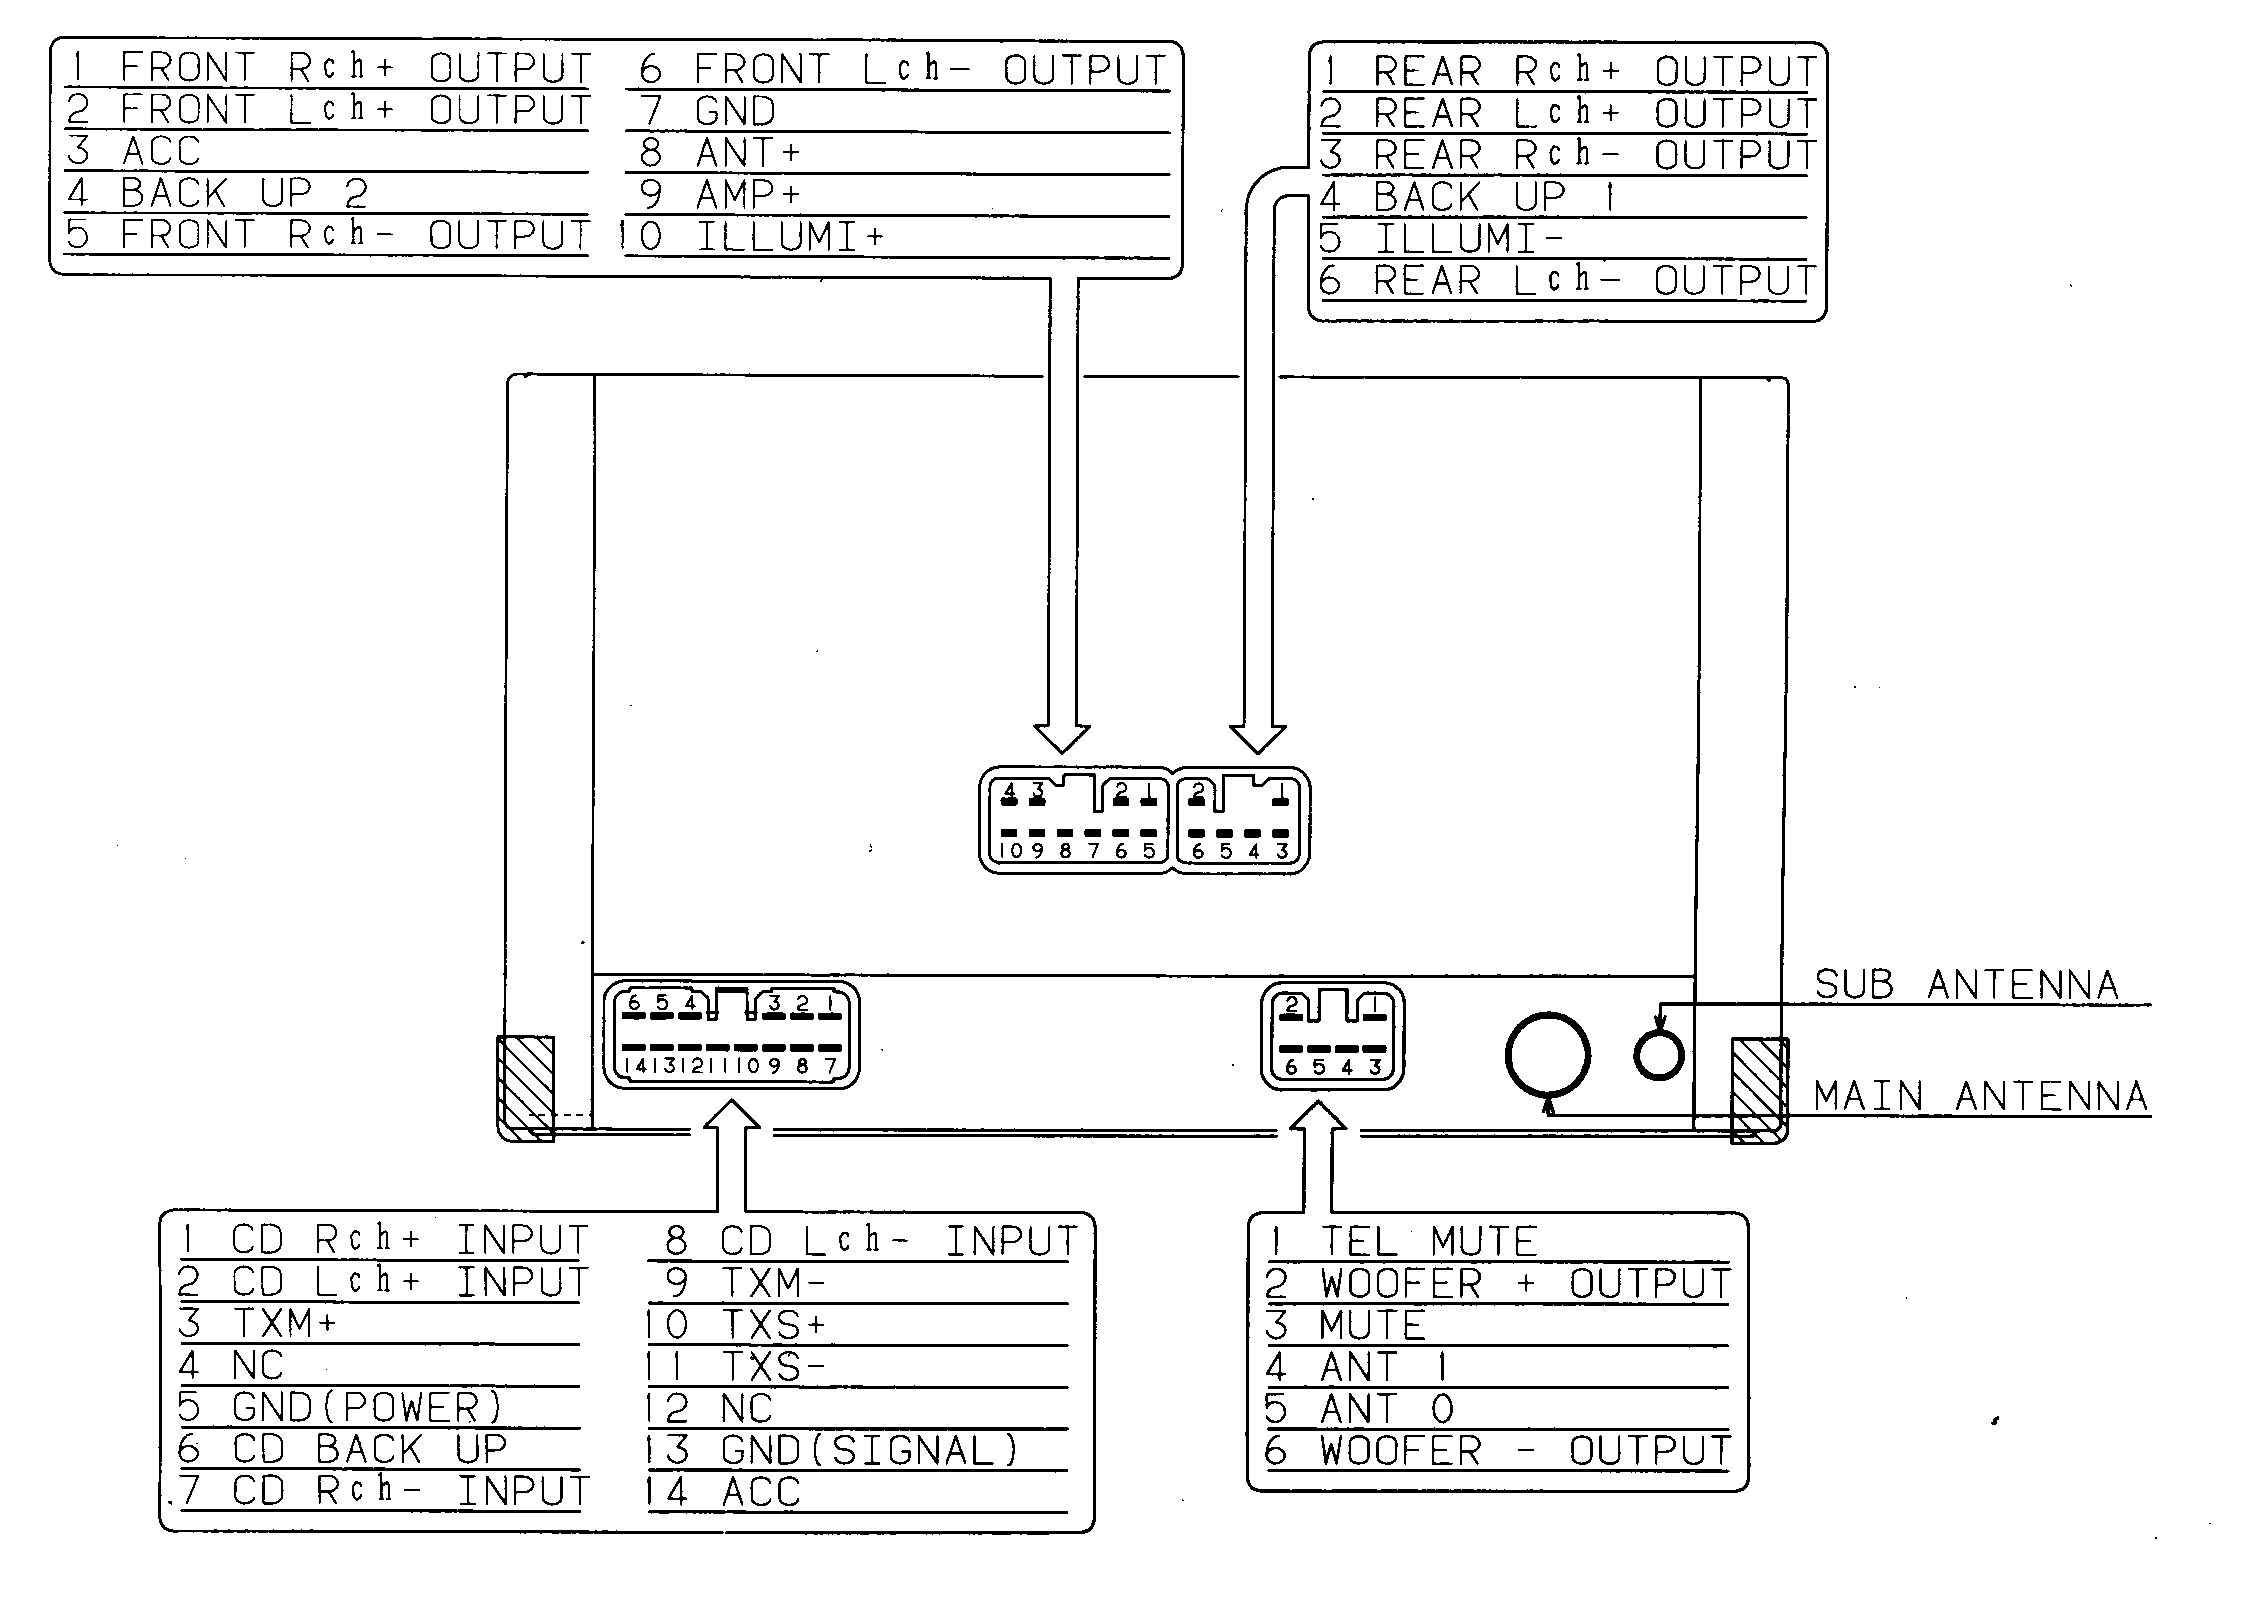 Isuzu Car Stereo Wiring Diagram Simple Electrical For 98 Audio Wire Codes Lexus Factory Repair Vcr